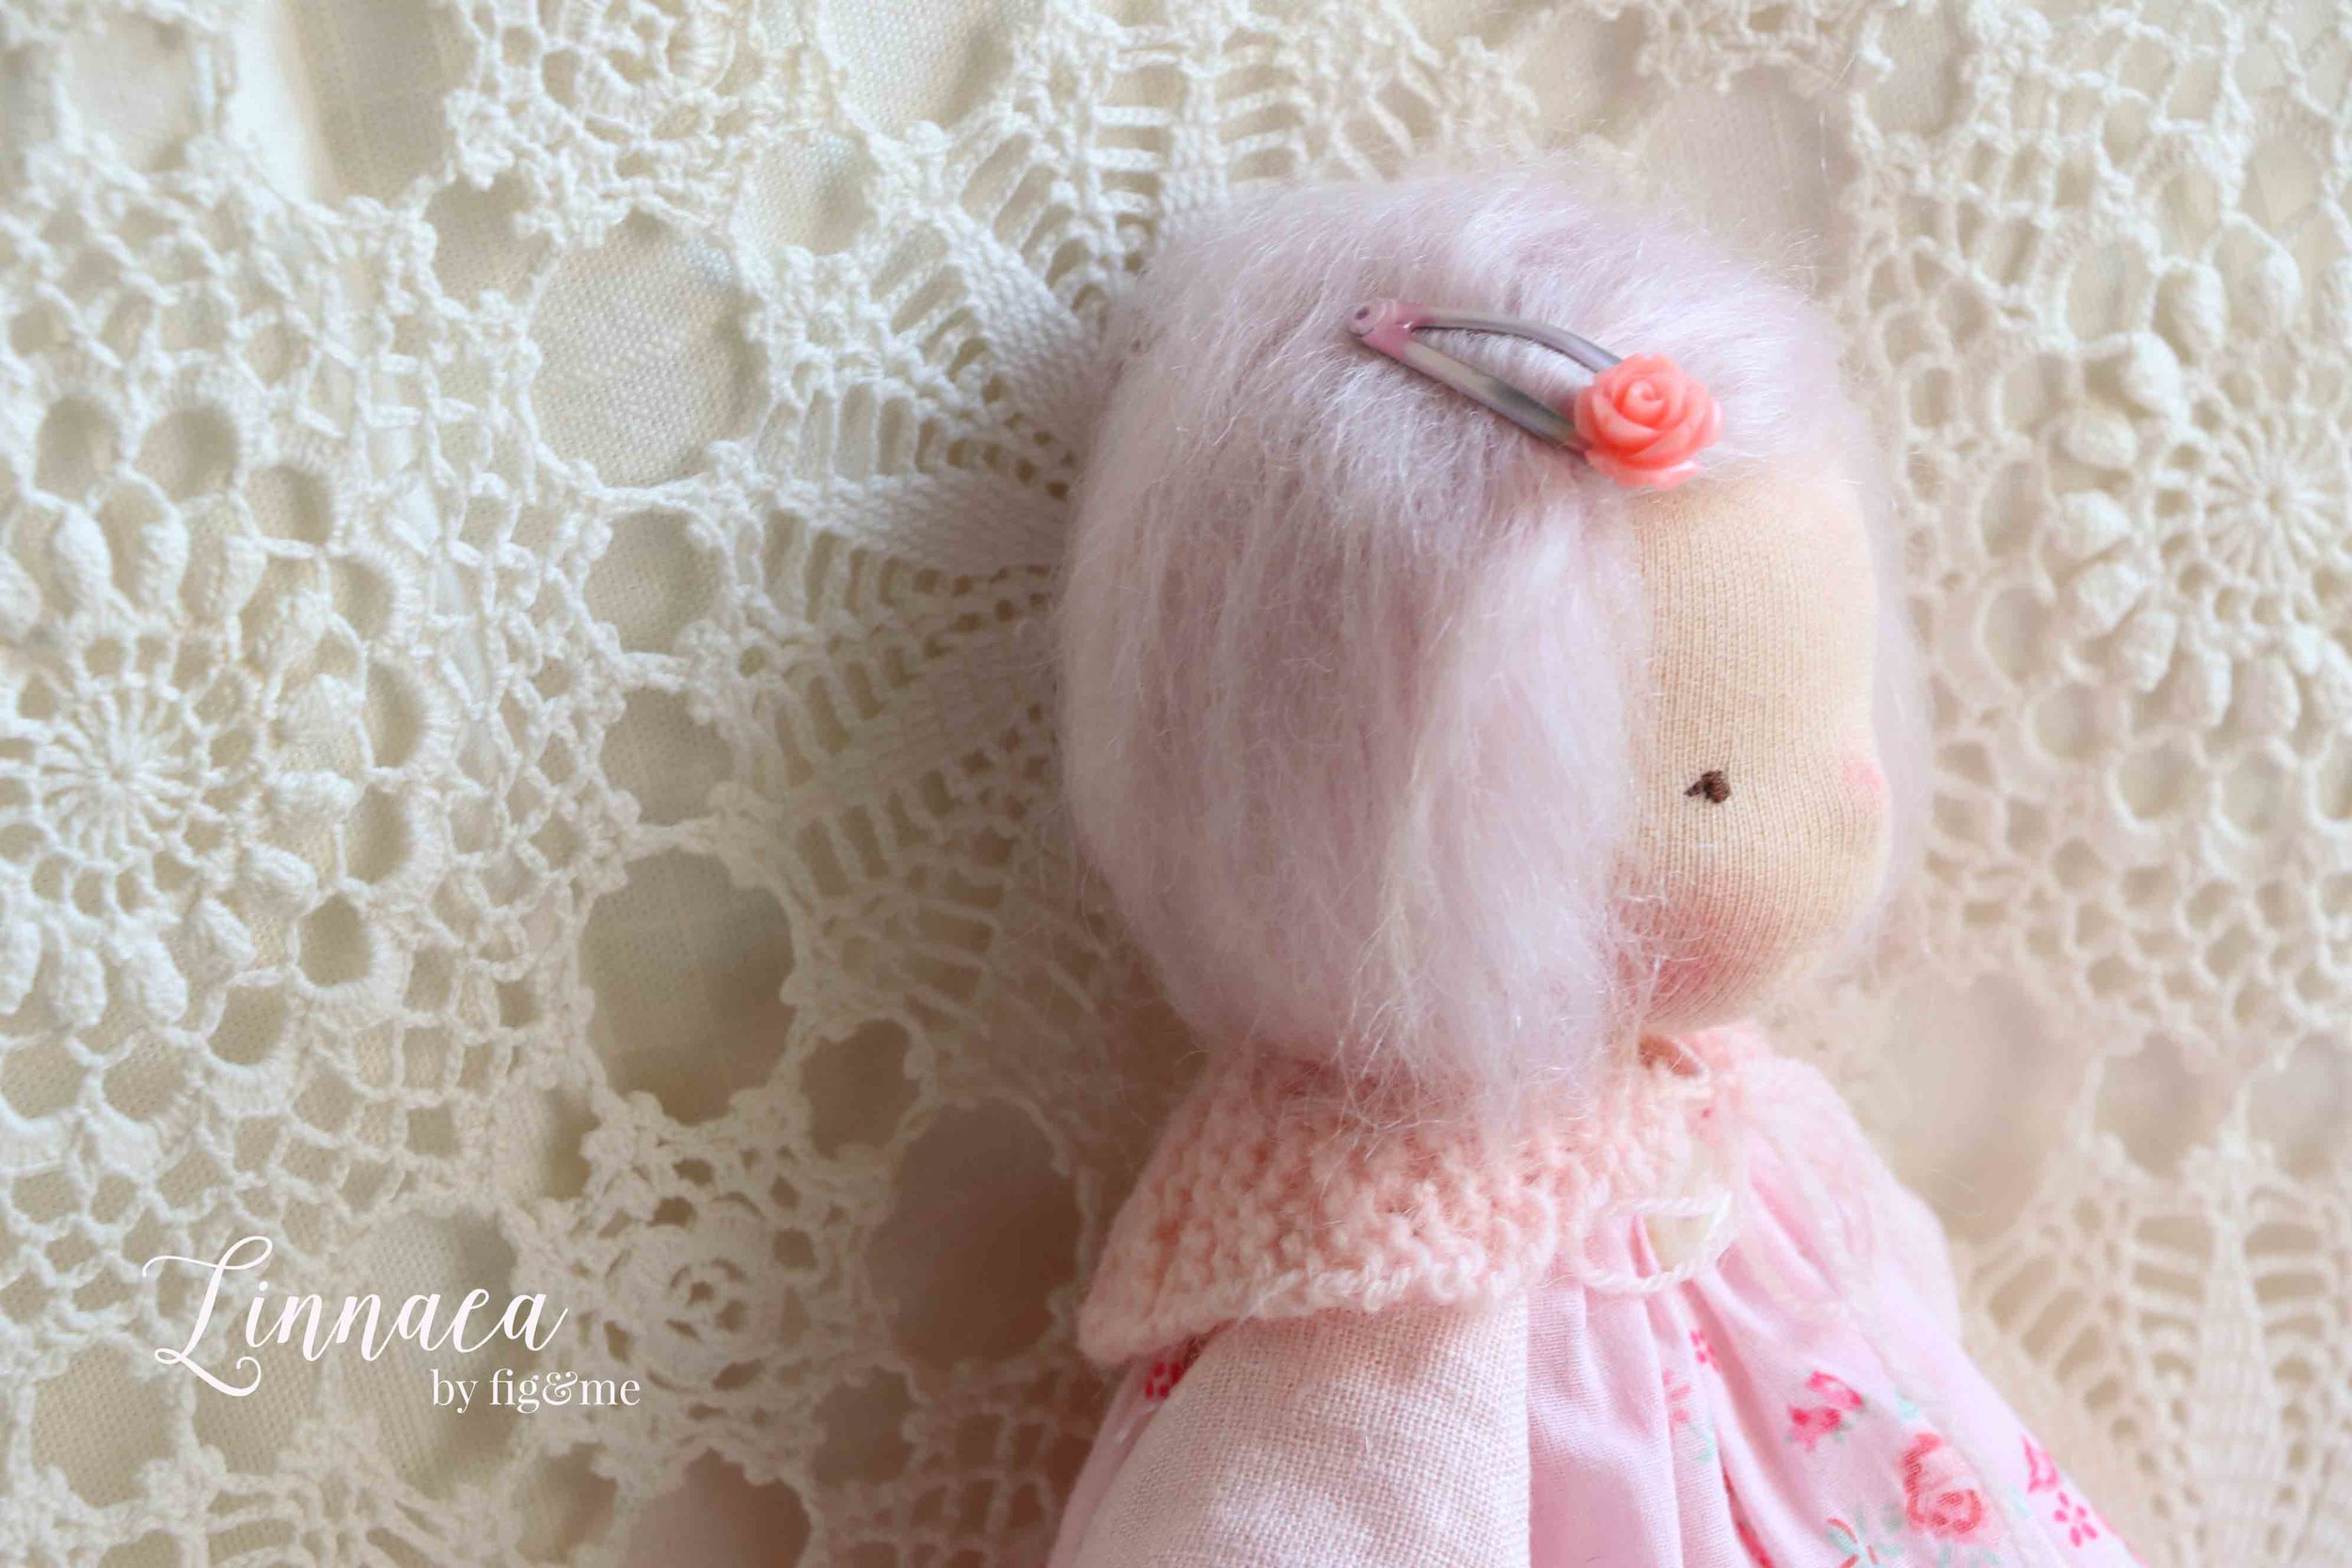 Linnaea, a waldorf-inspired natural doll by fig and me.